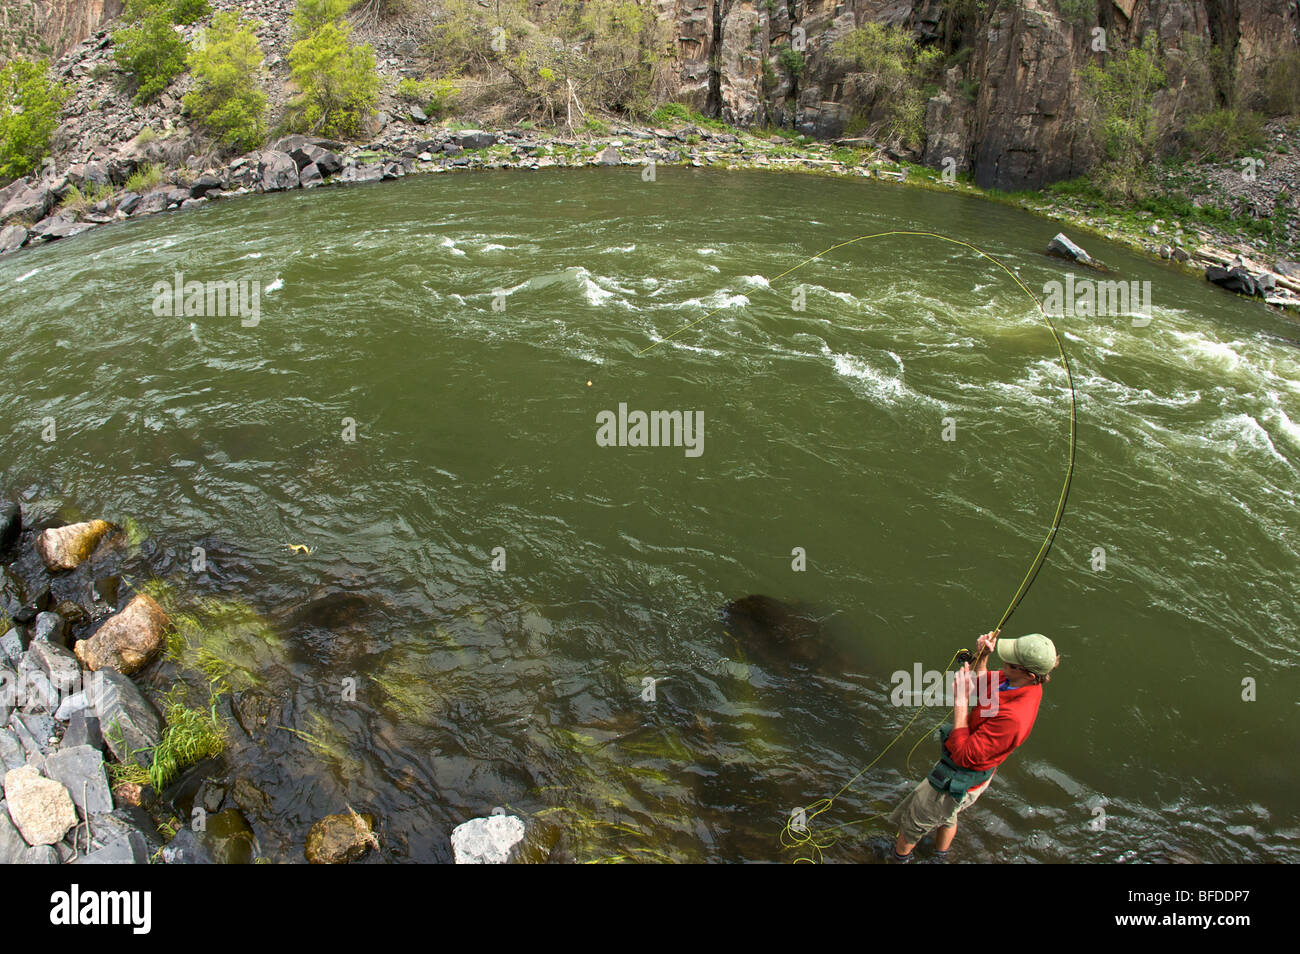 An angler hooks a fish on a river in Colorado. - Stock Image